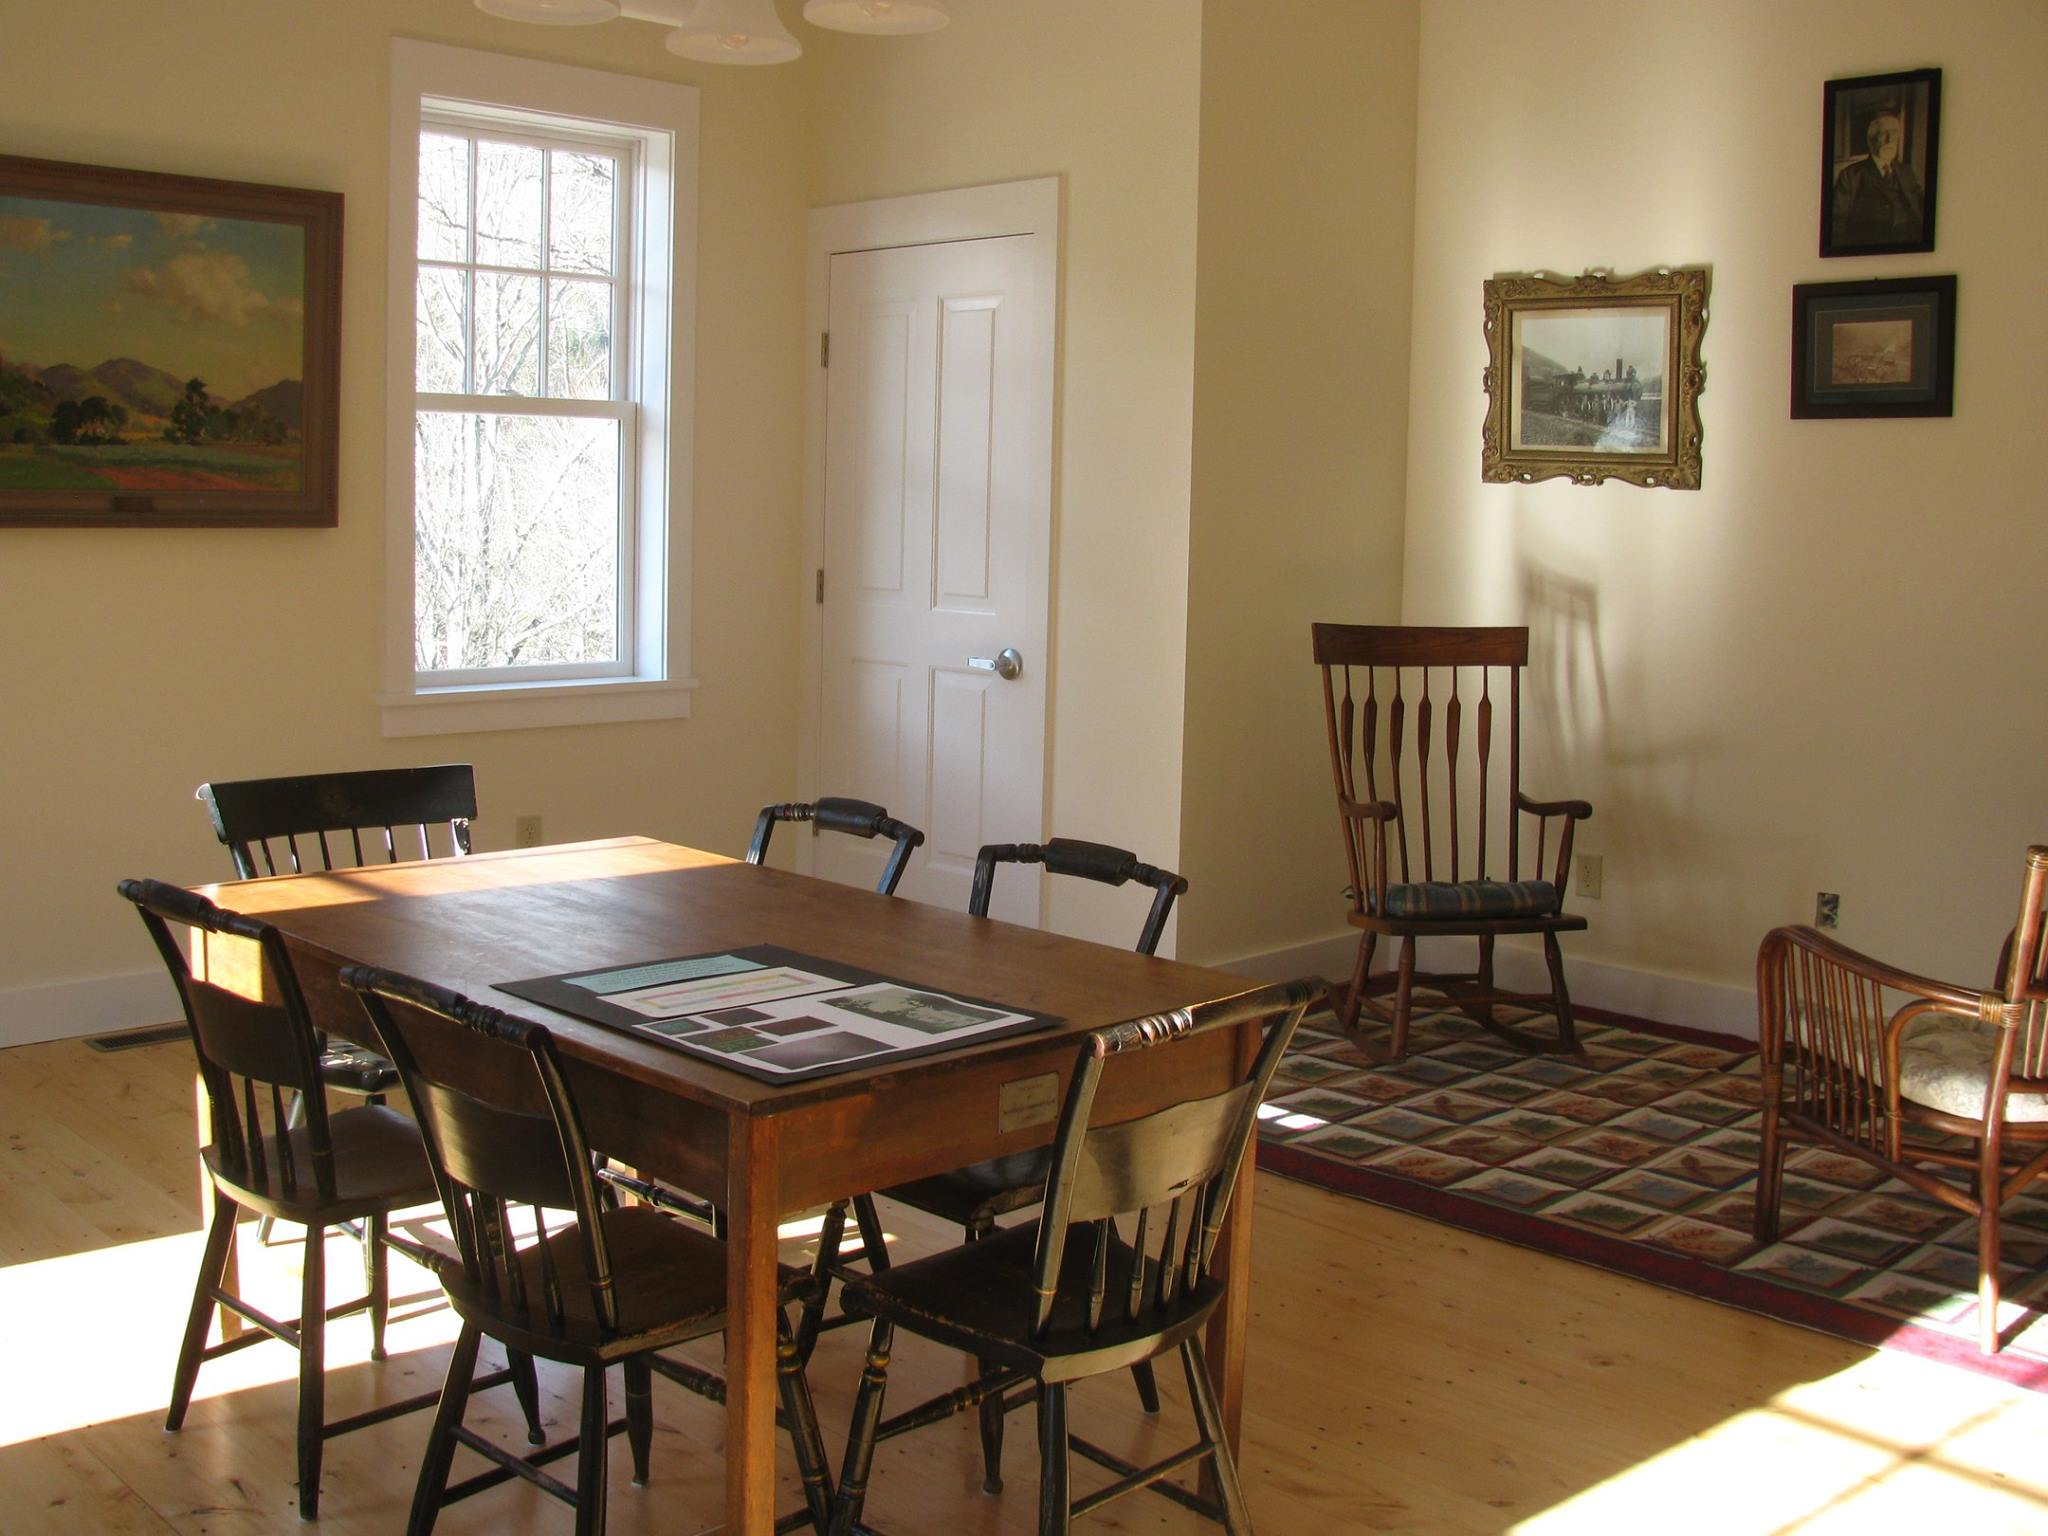 The Vermont Room at the Rochester Public Library